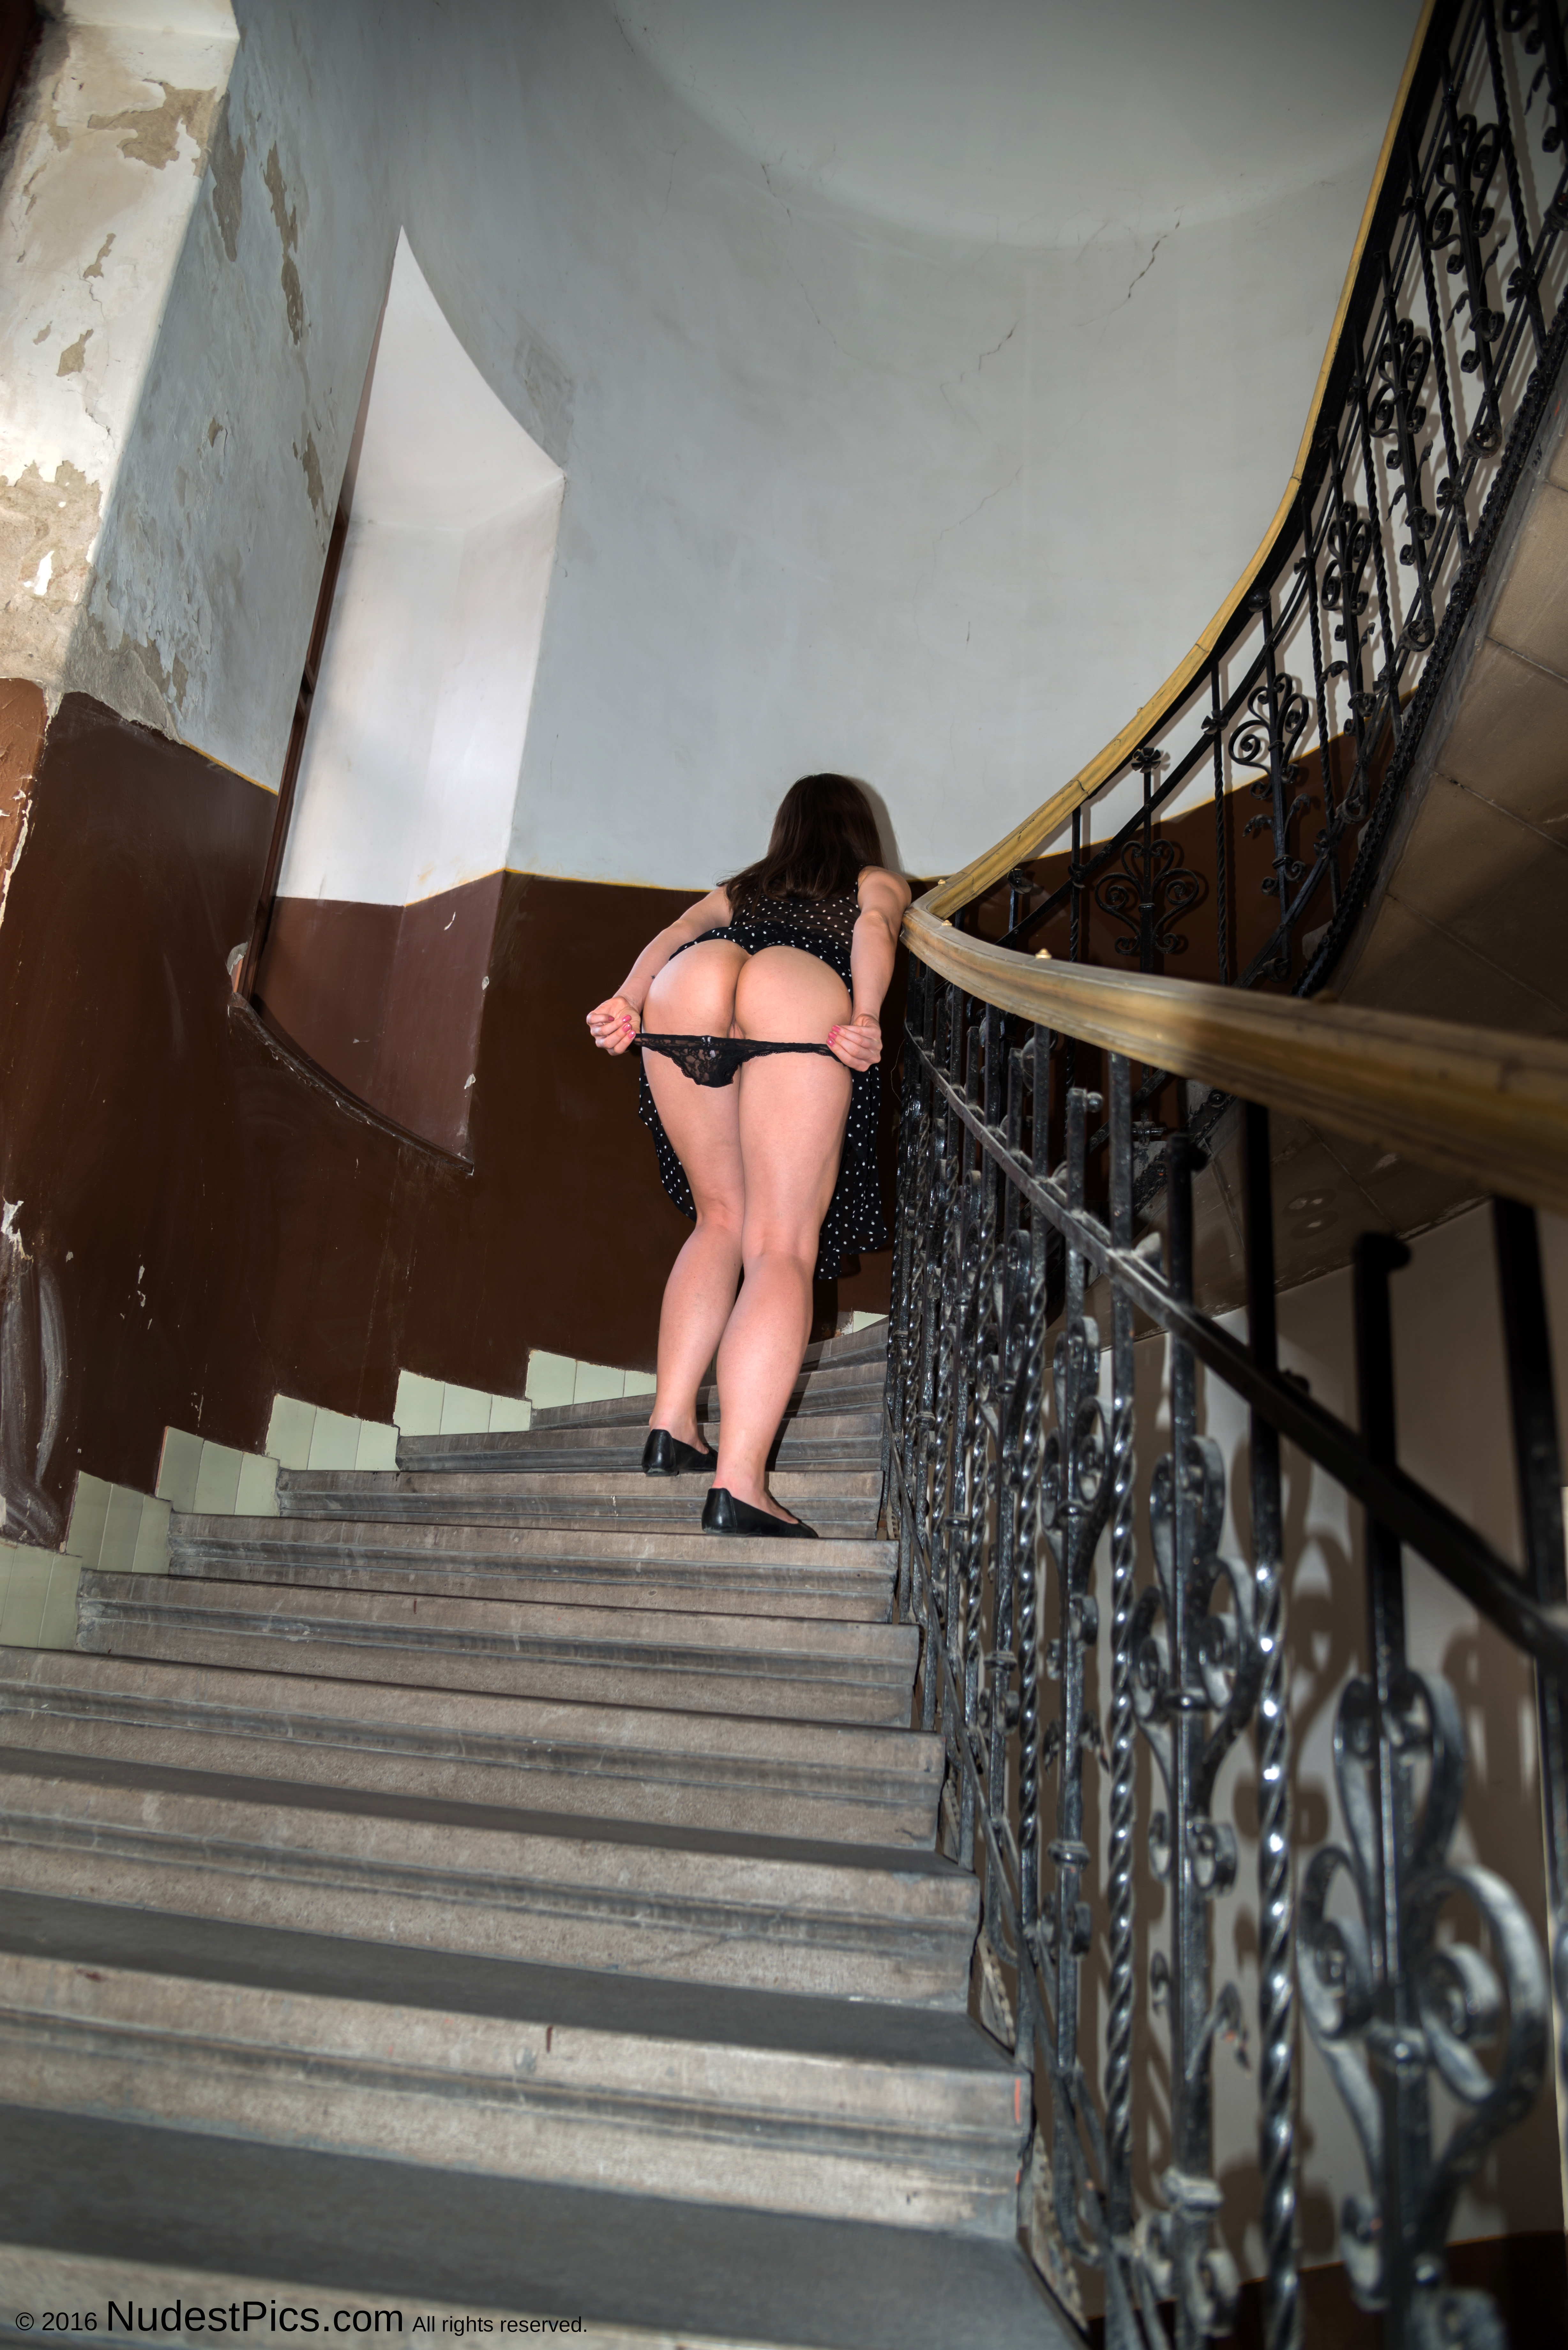 Flashing Round Buttocks Old Building's Grand Stairs